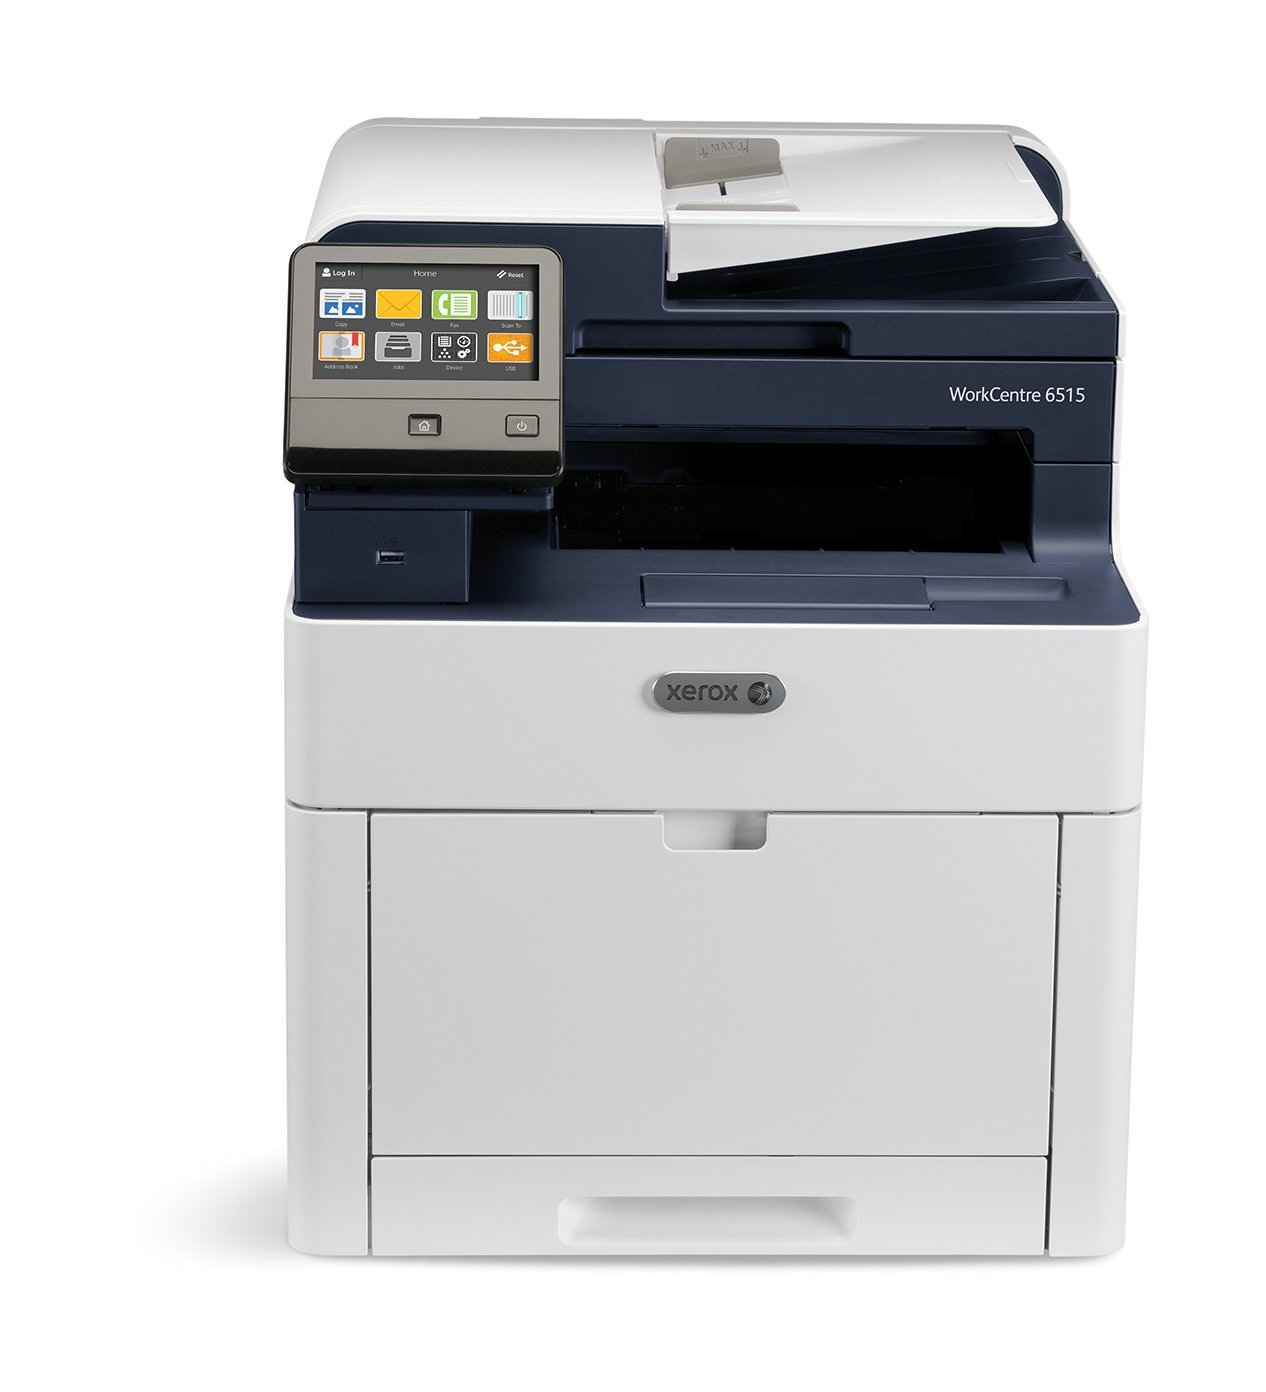 Xerox 6515/DNM Workcentre 6515 Color Multifunction Printer Print/Copy/scan/email/fax Letter/l by Xerox